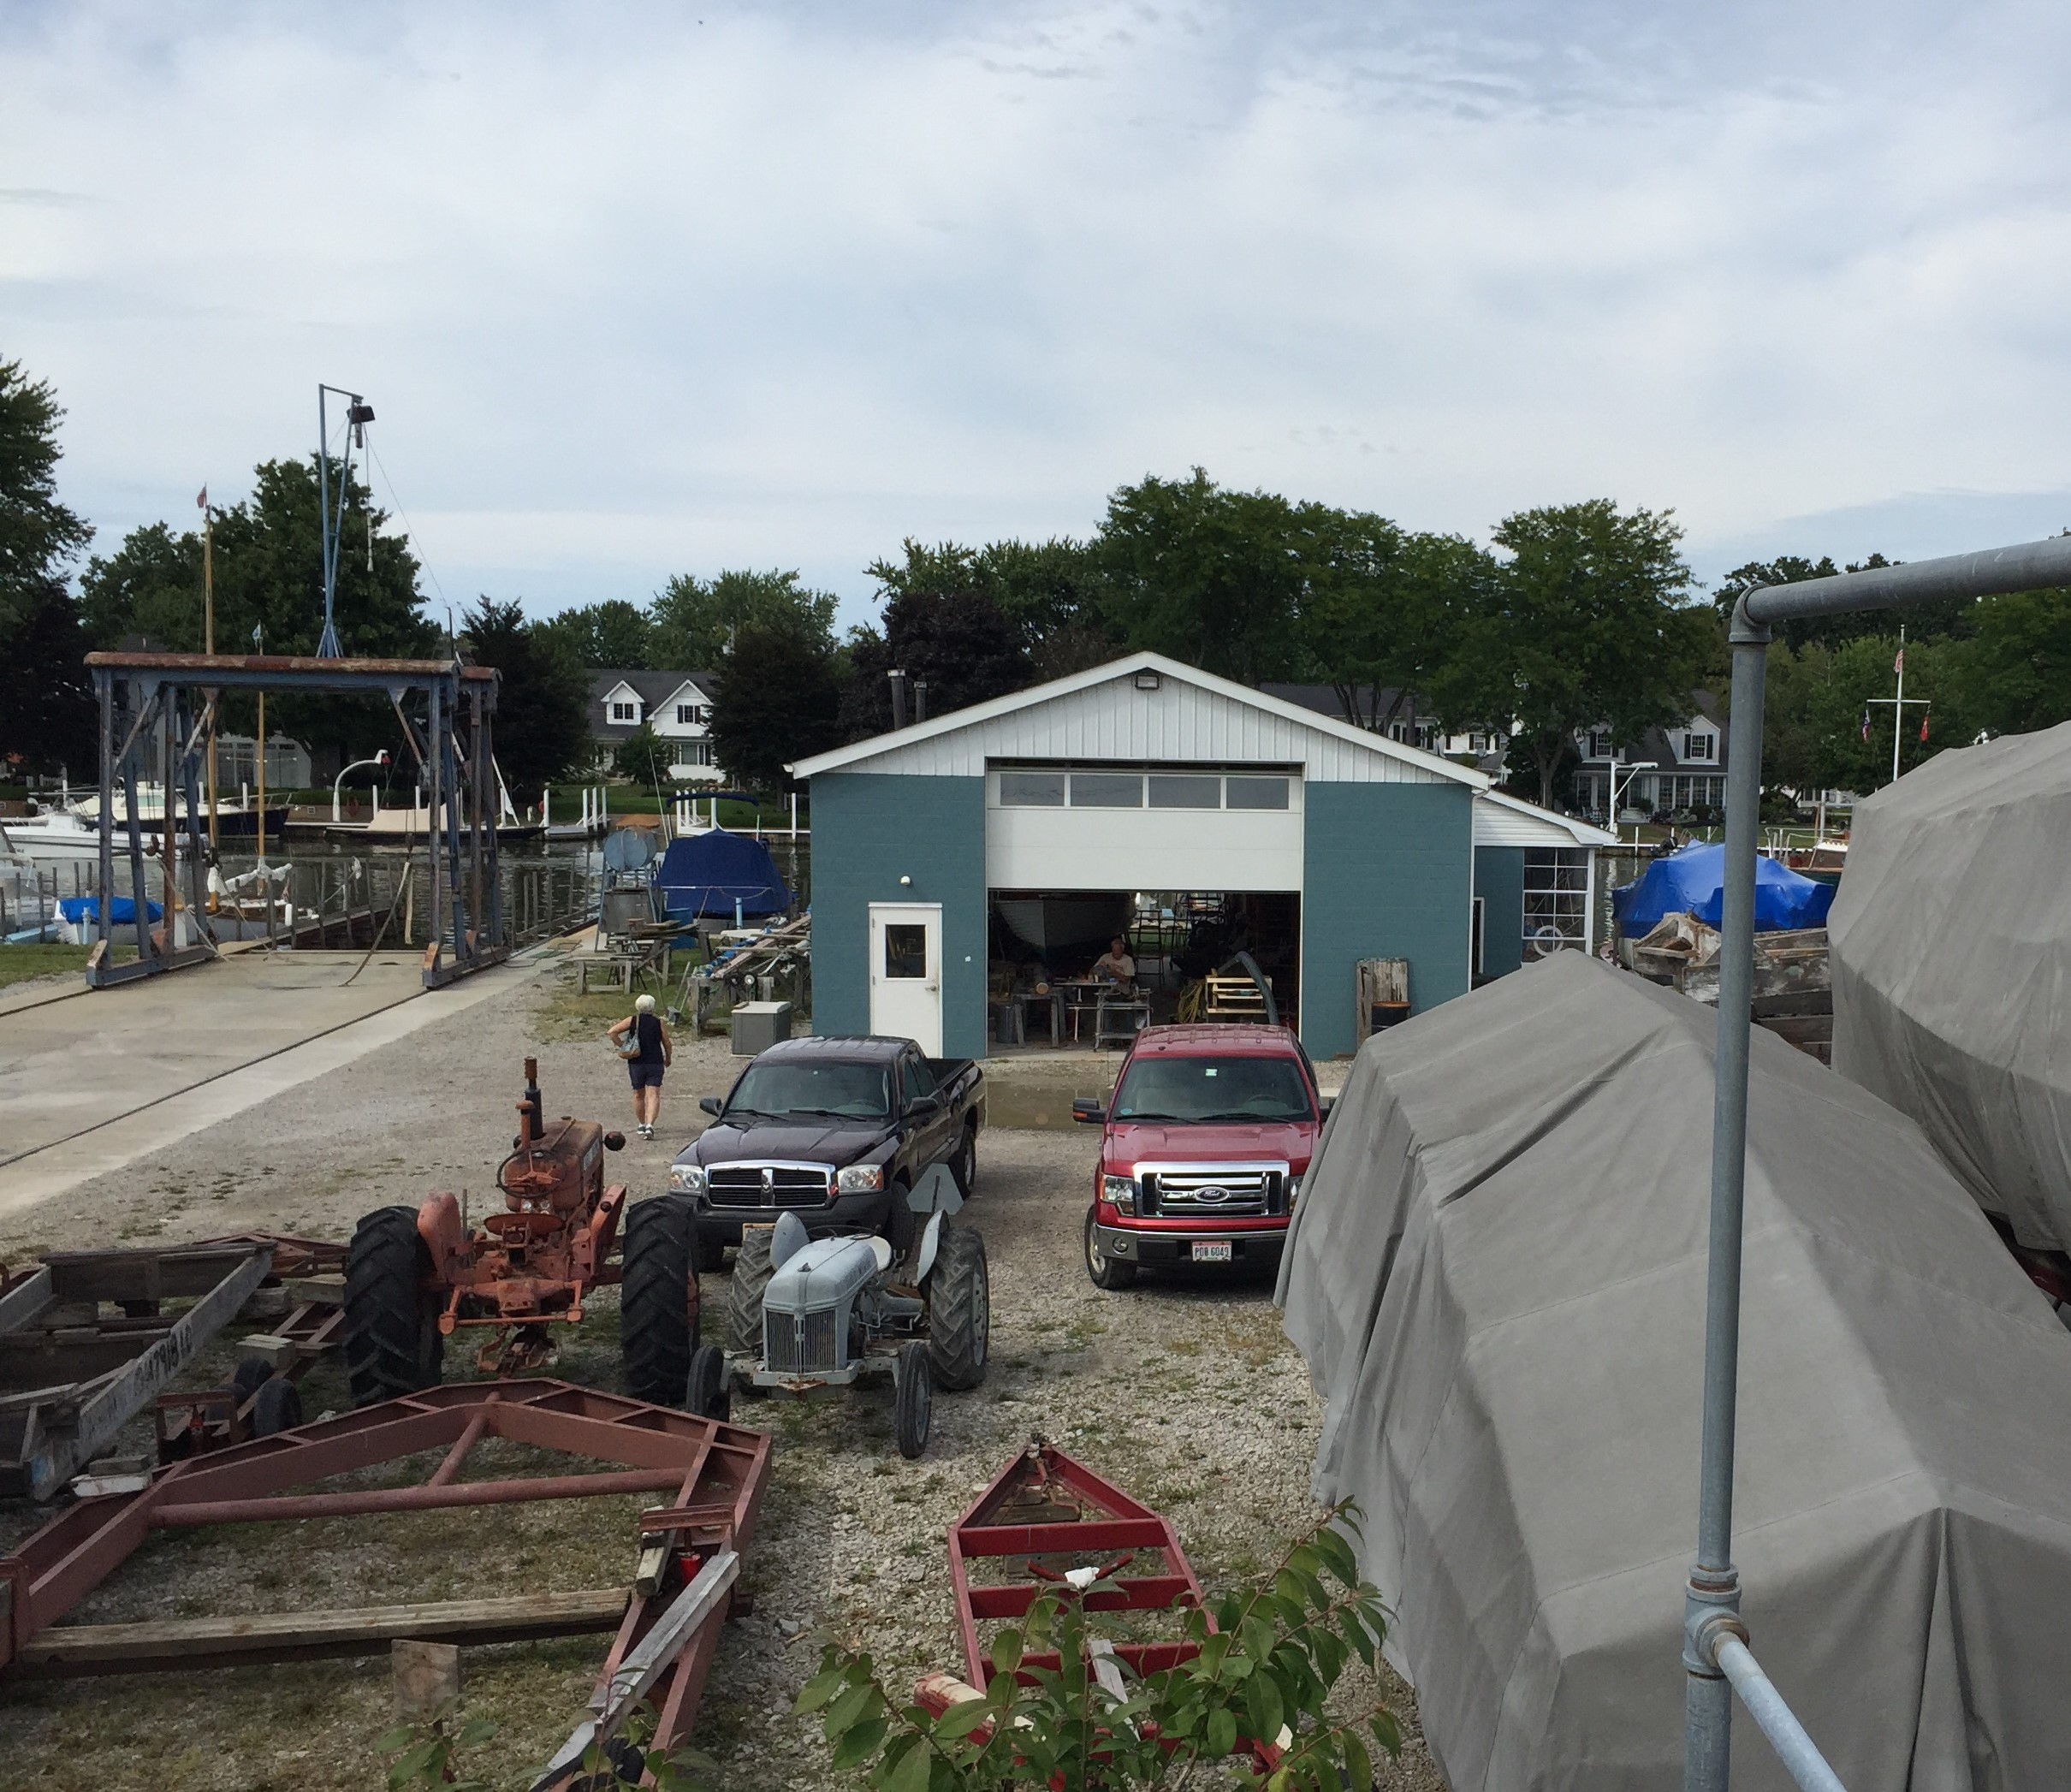 Boatyard in Vermilion, Ohio (Photo: Sarah Sundin, August 2016)